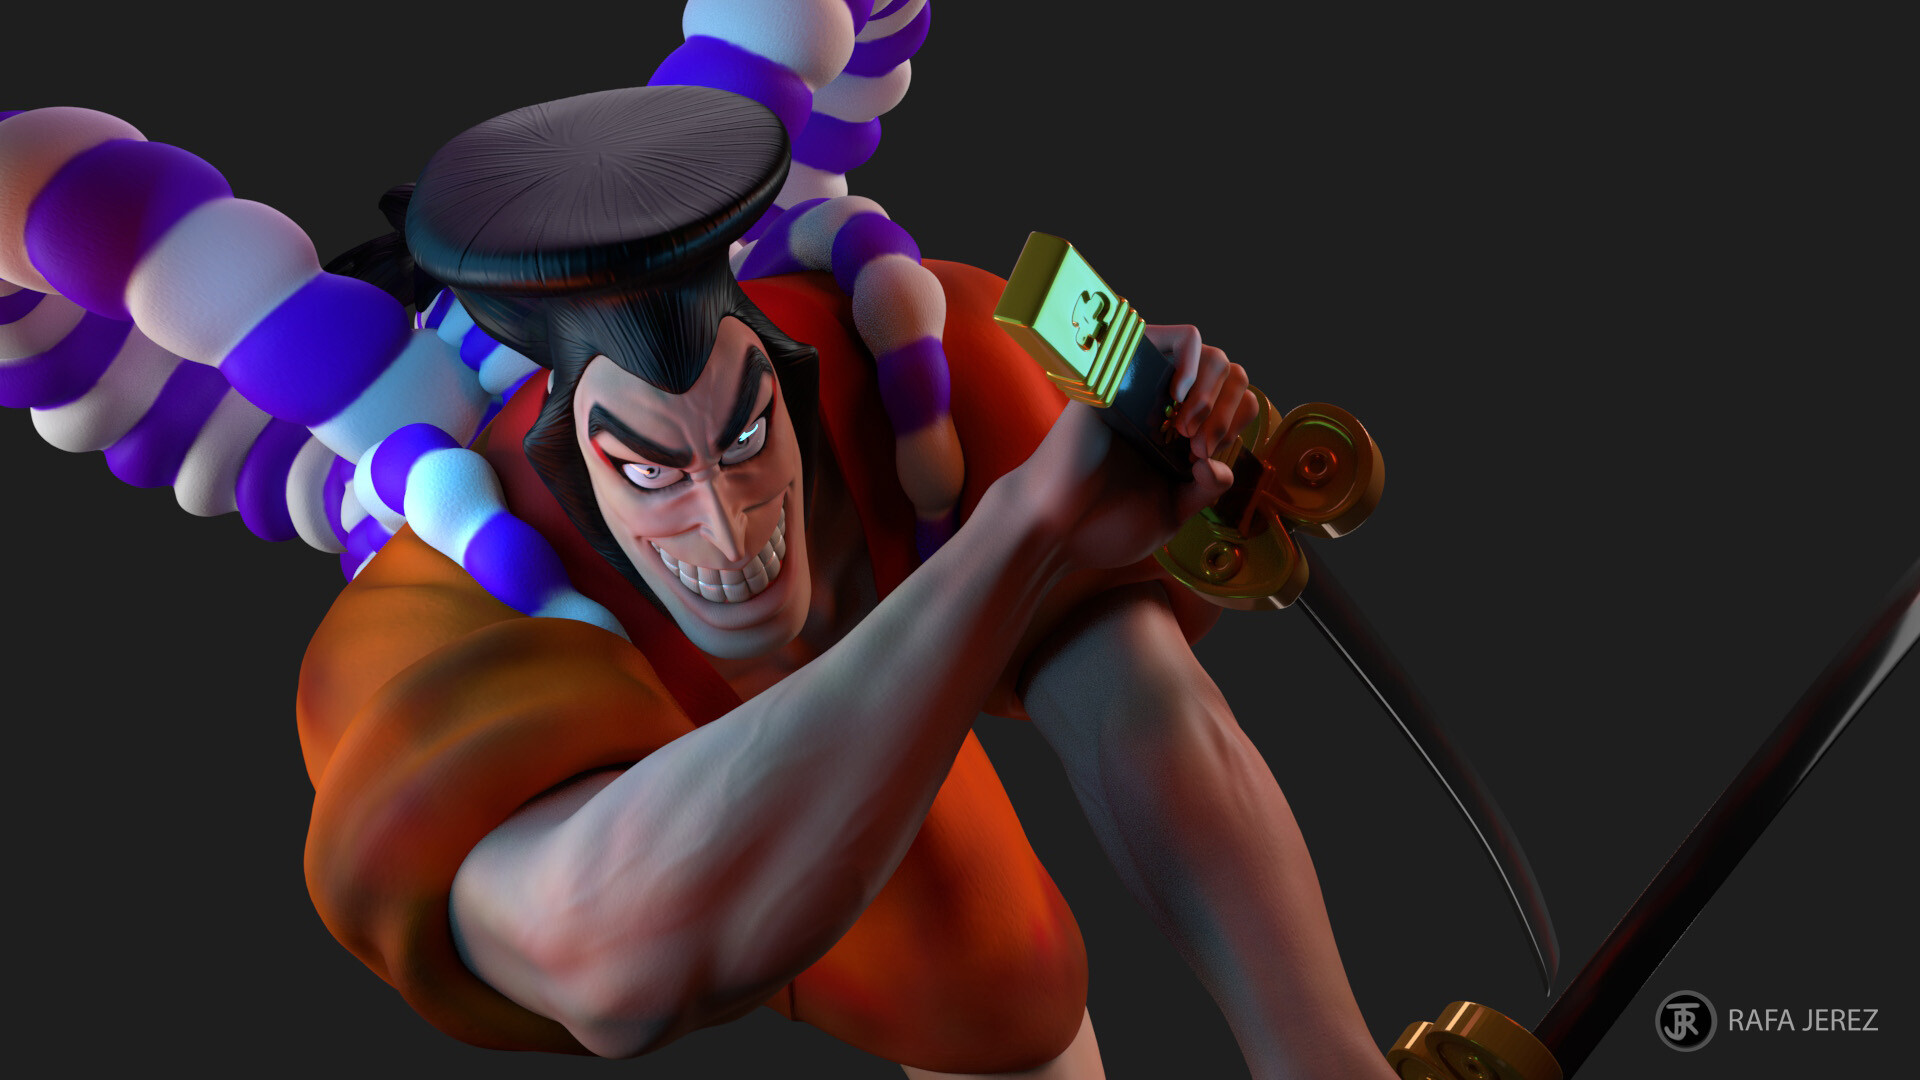 Artstation Oden Kozuki Wano S Legendary Shogun One Piece Rafa Jerez